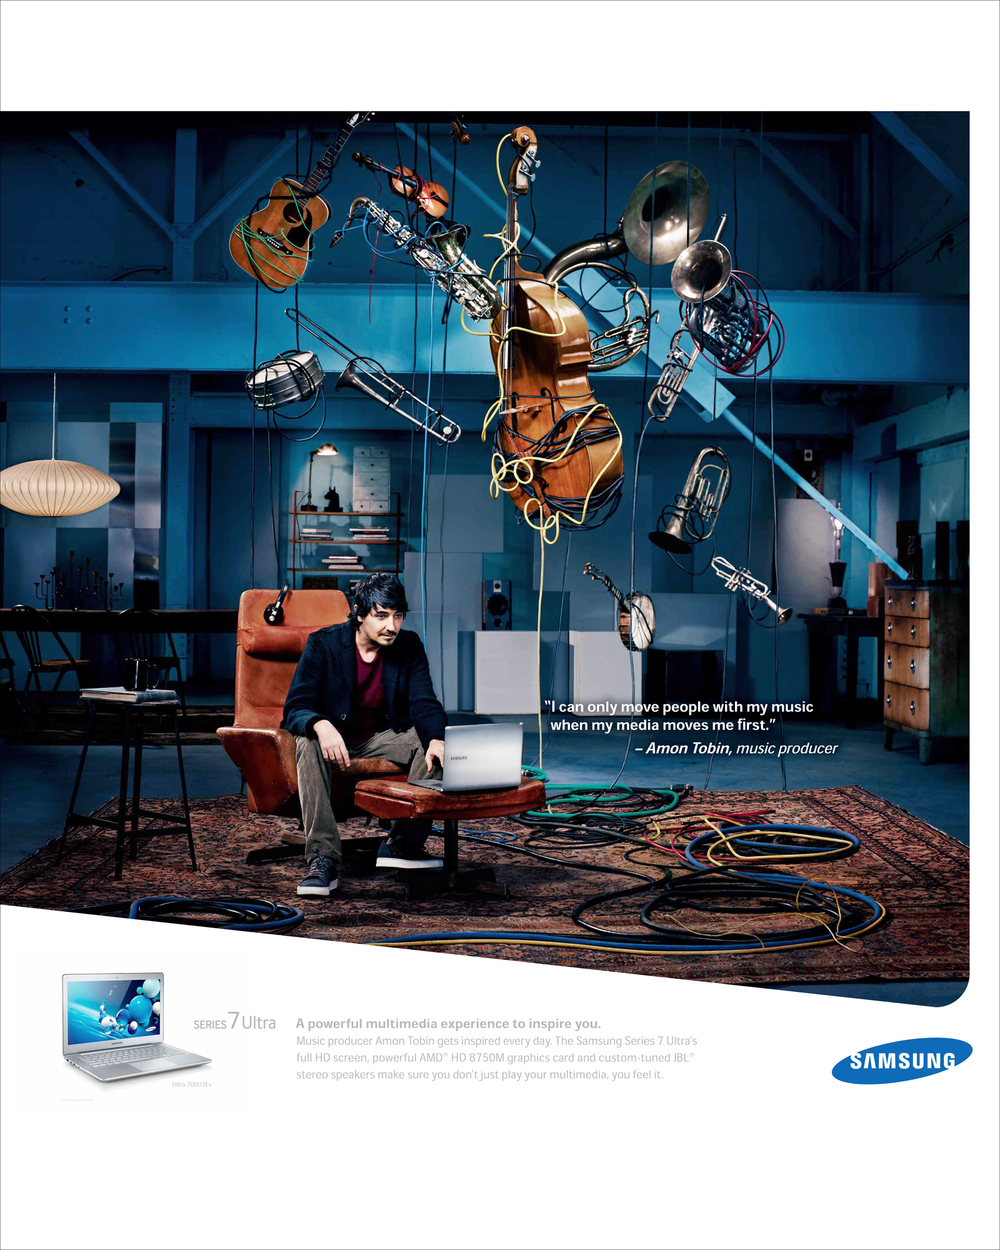 Amon Tobin, Musician, Producer and DJ for Samsung Series 7 Chronos - Los Angeles, CA